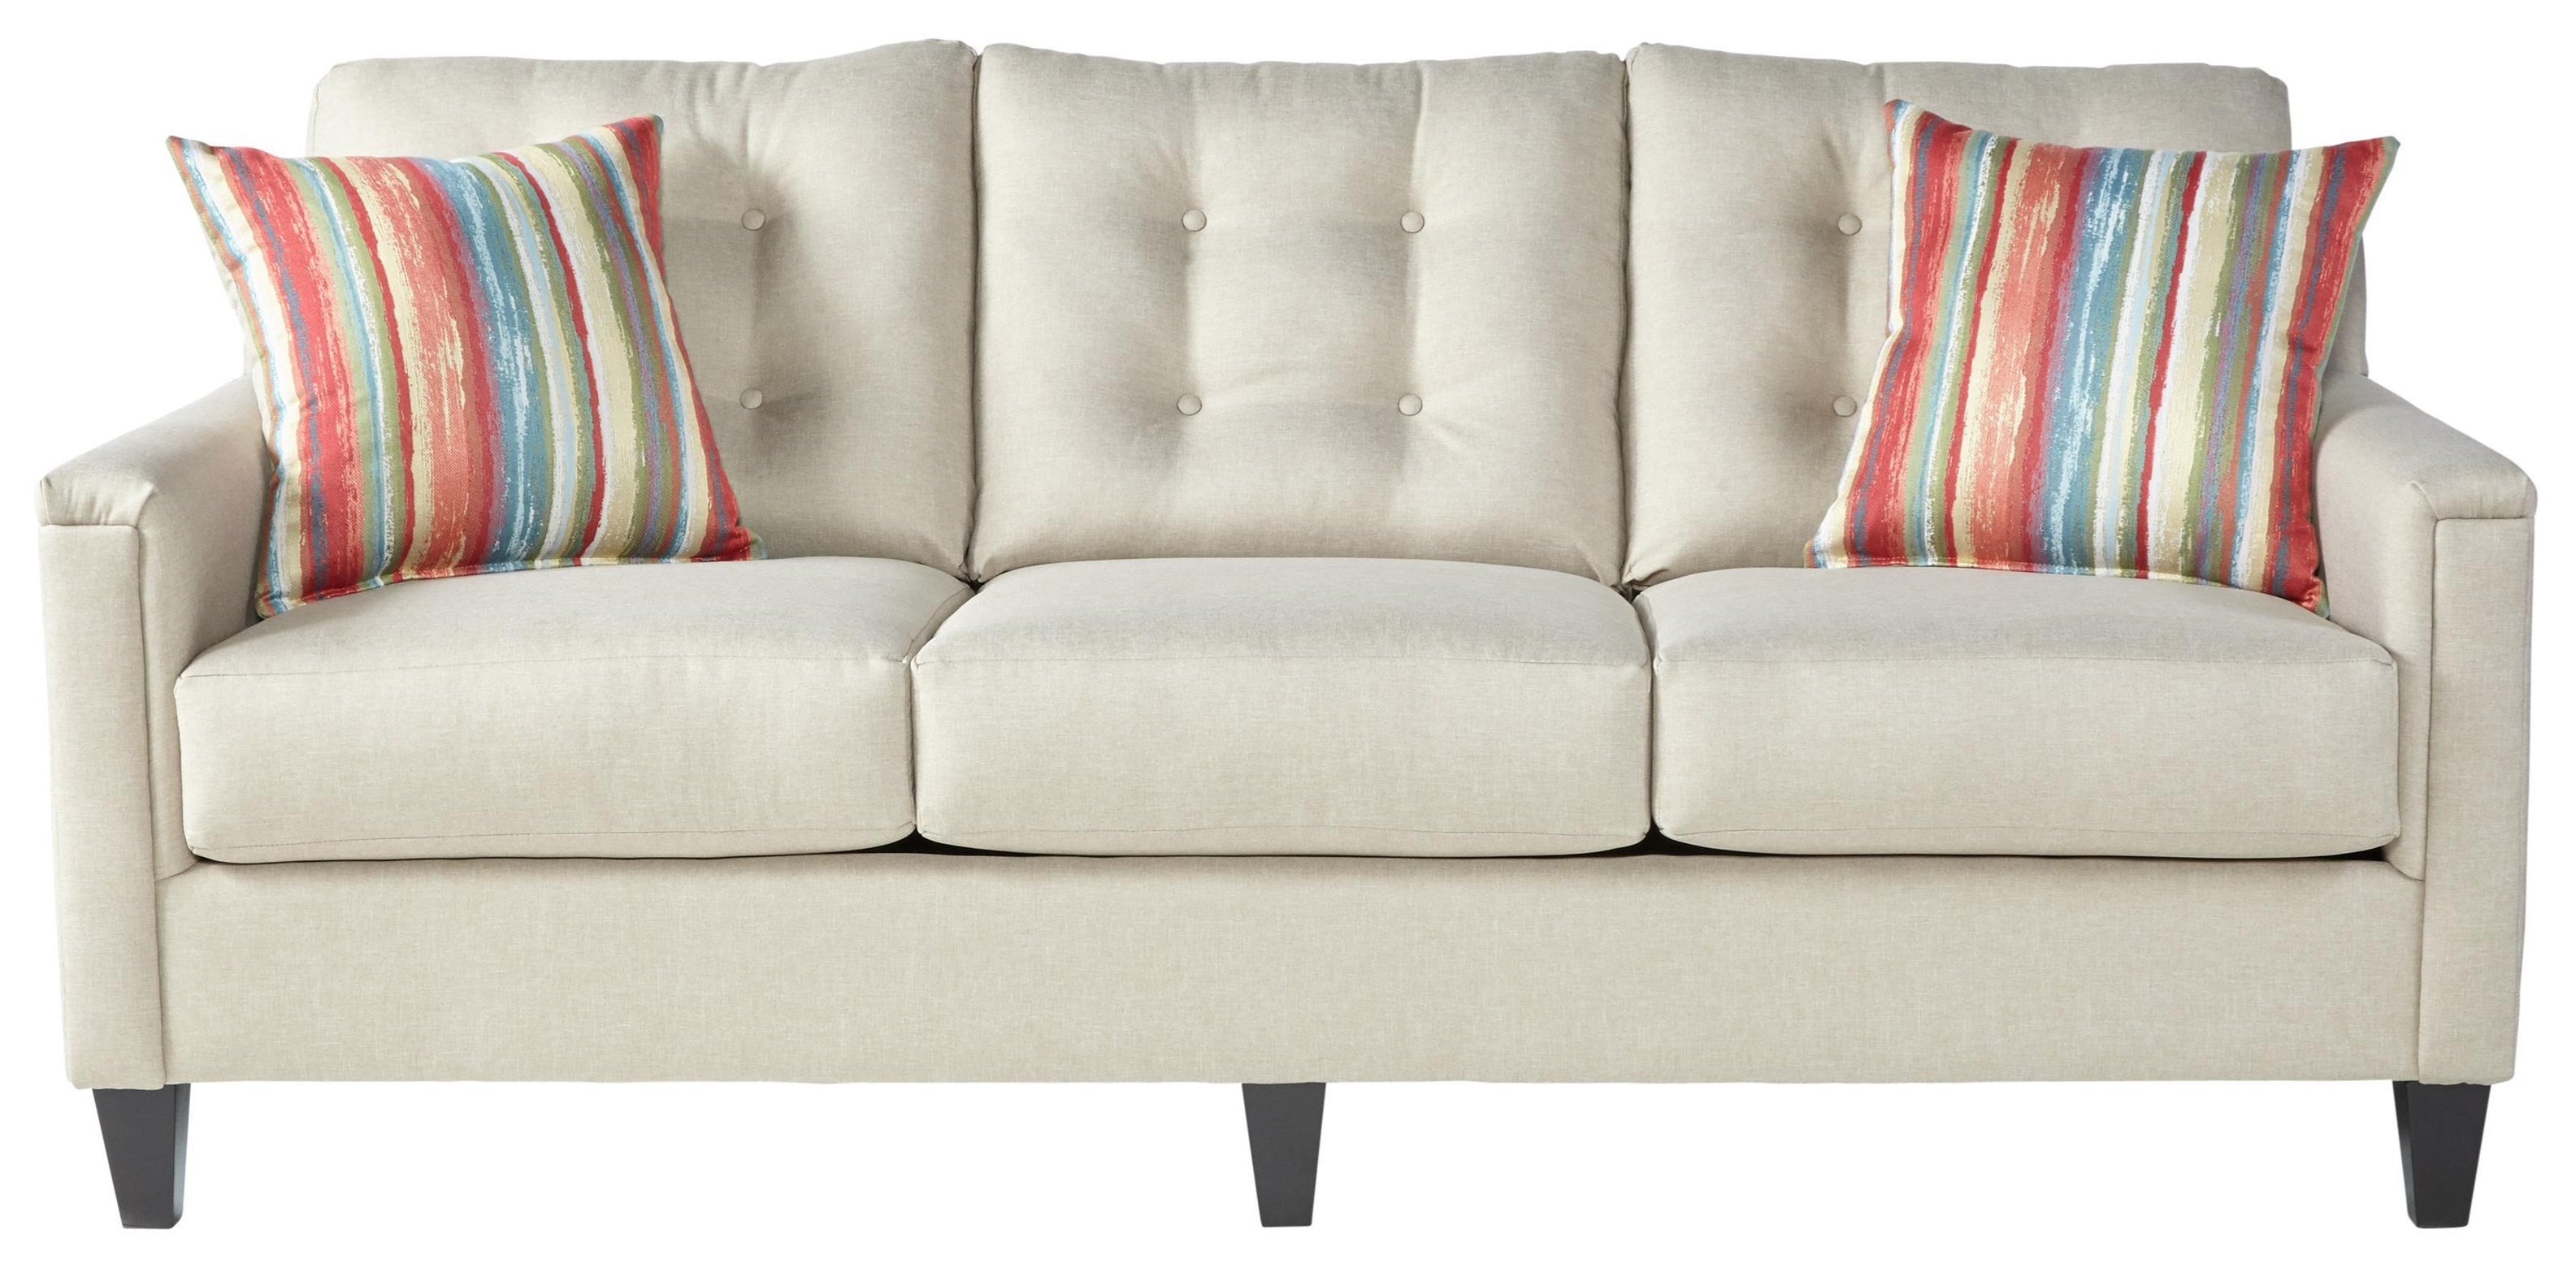 6800 Casual Sofa by Serta Upholstery by Hughes Furniture at VanDrie Home Furnishings